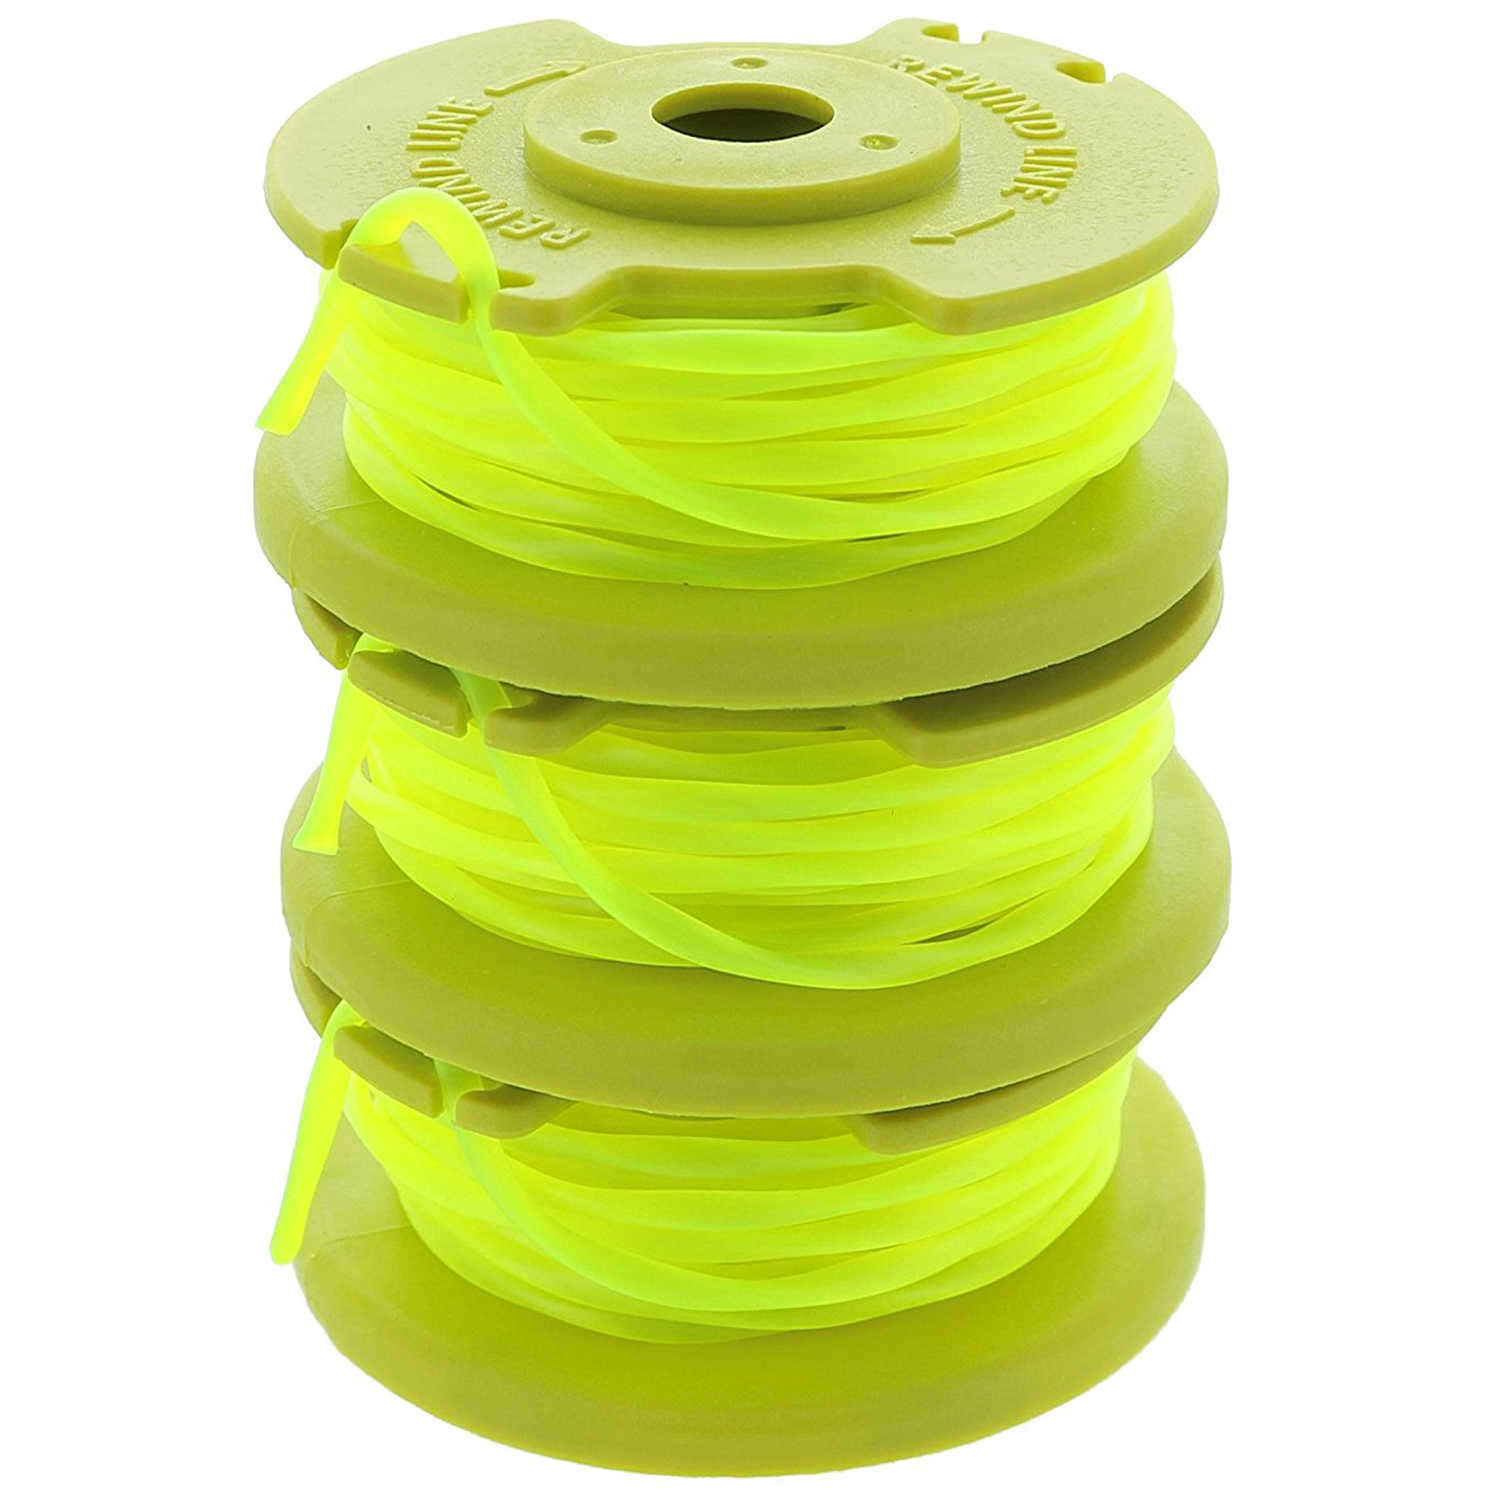 Pro For Ryobi One PLUS AC80RL3 OEM .080 Inch Twisted Line and Spool Replacement for 18v, 24v, and 40v Cordless Trimmers (3 Pack)